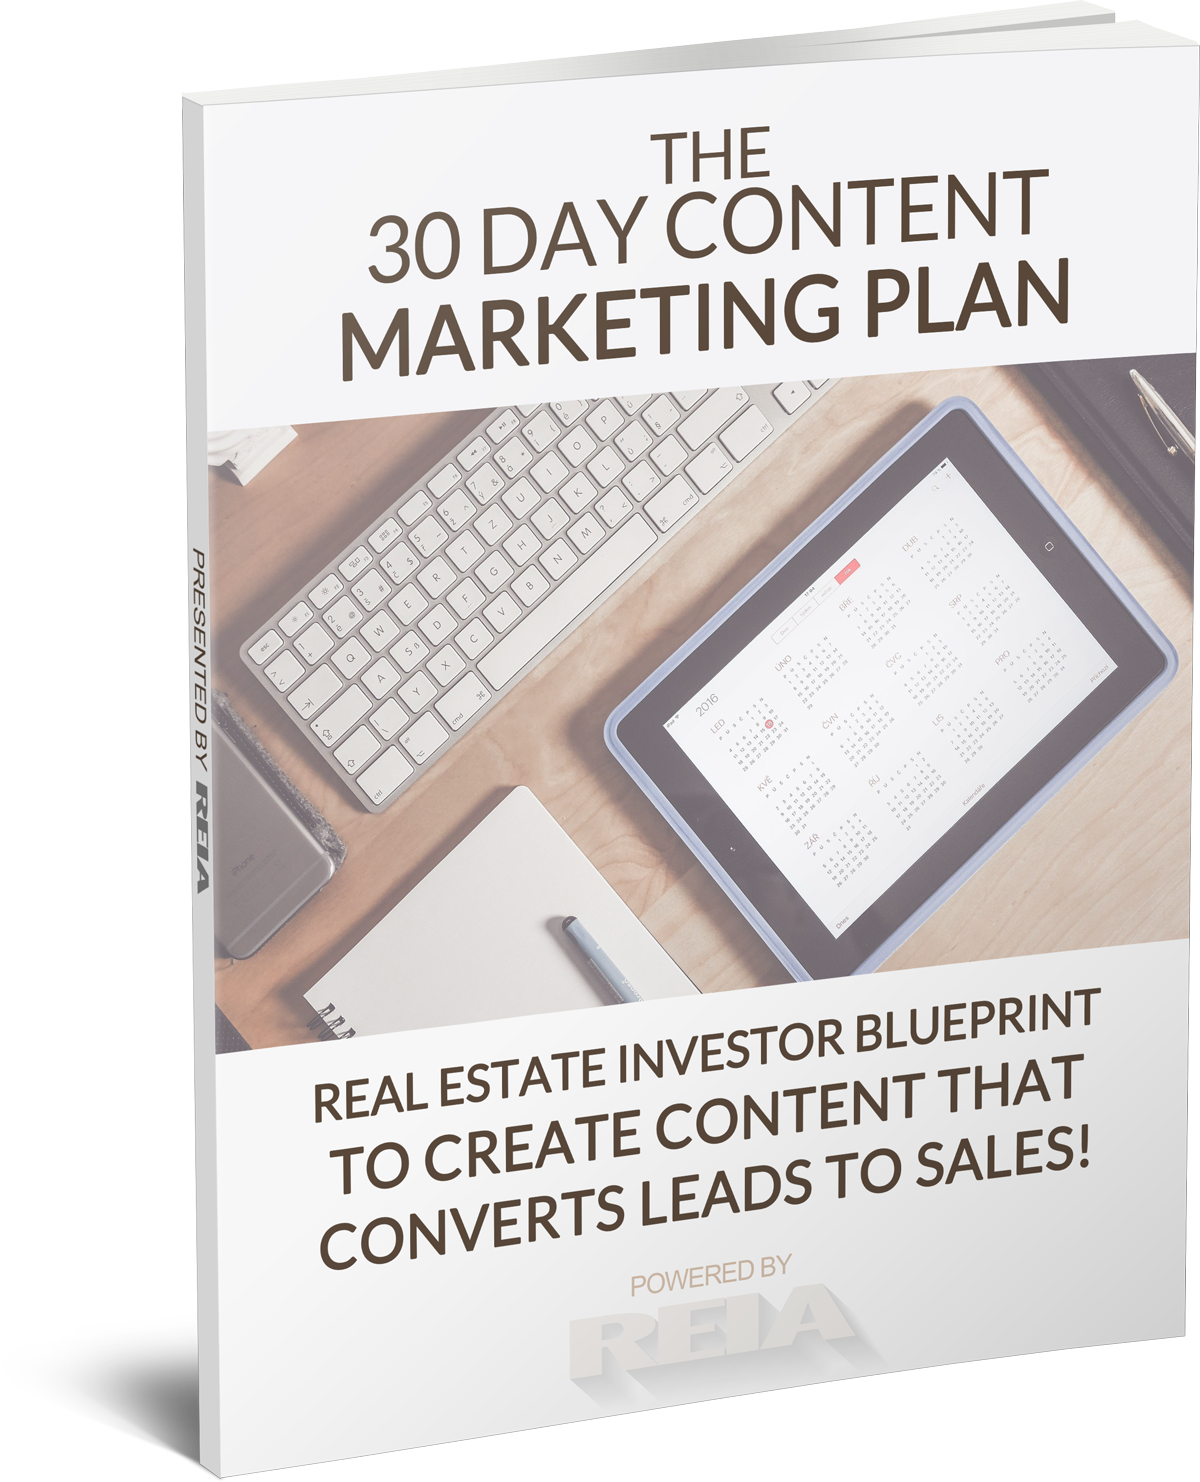 Best real estate investing book to build a cash buyers list and attract motivate sellers!